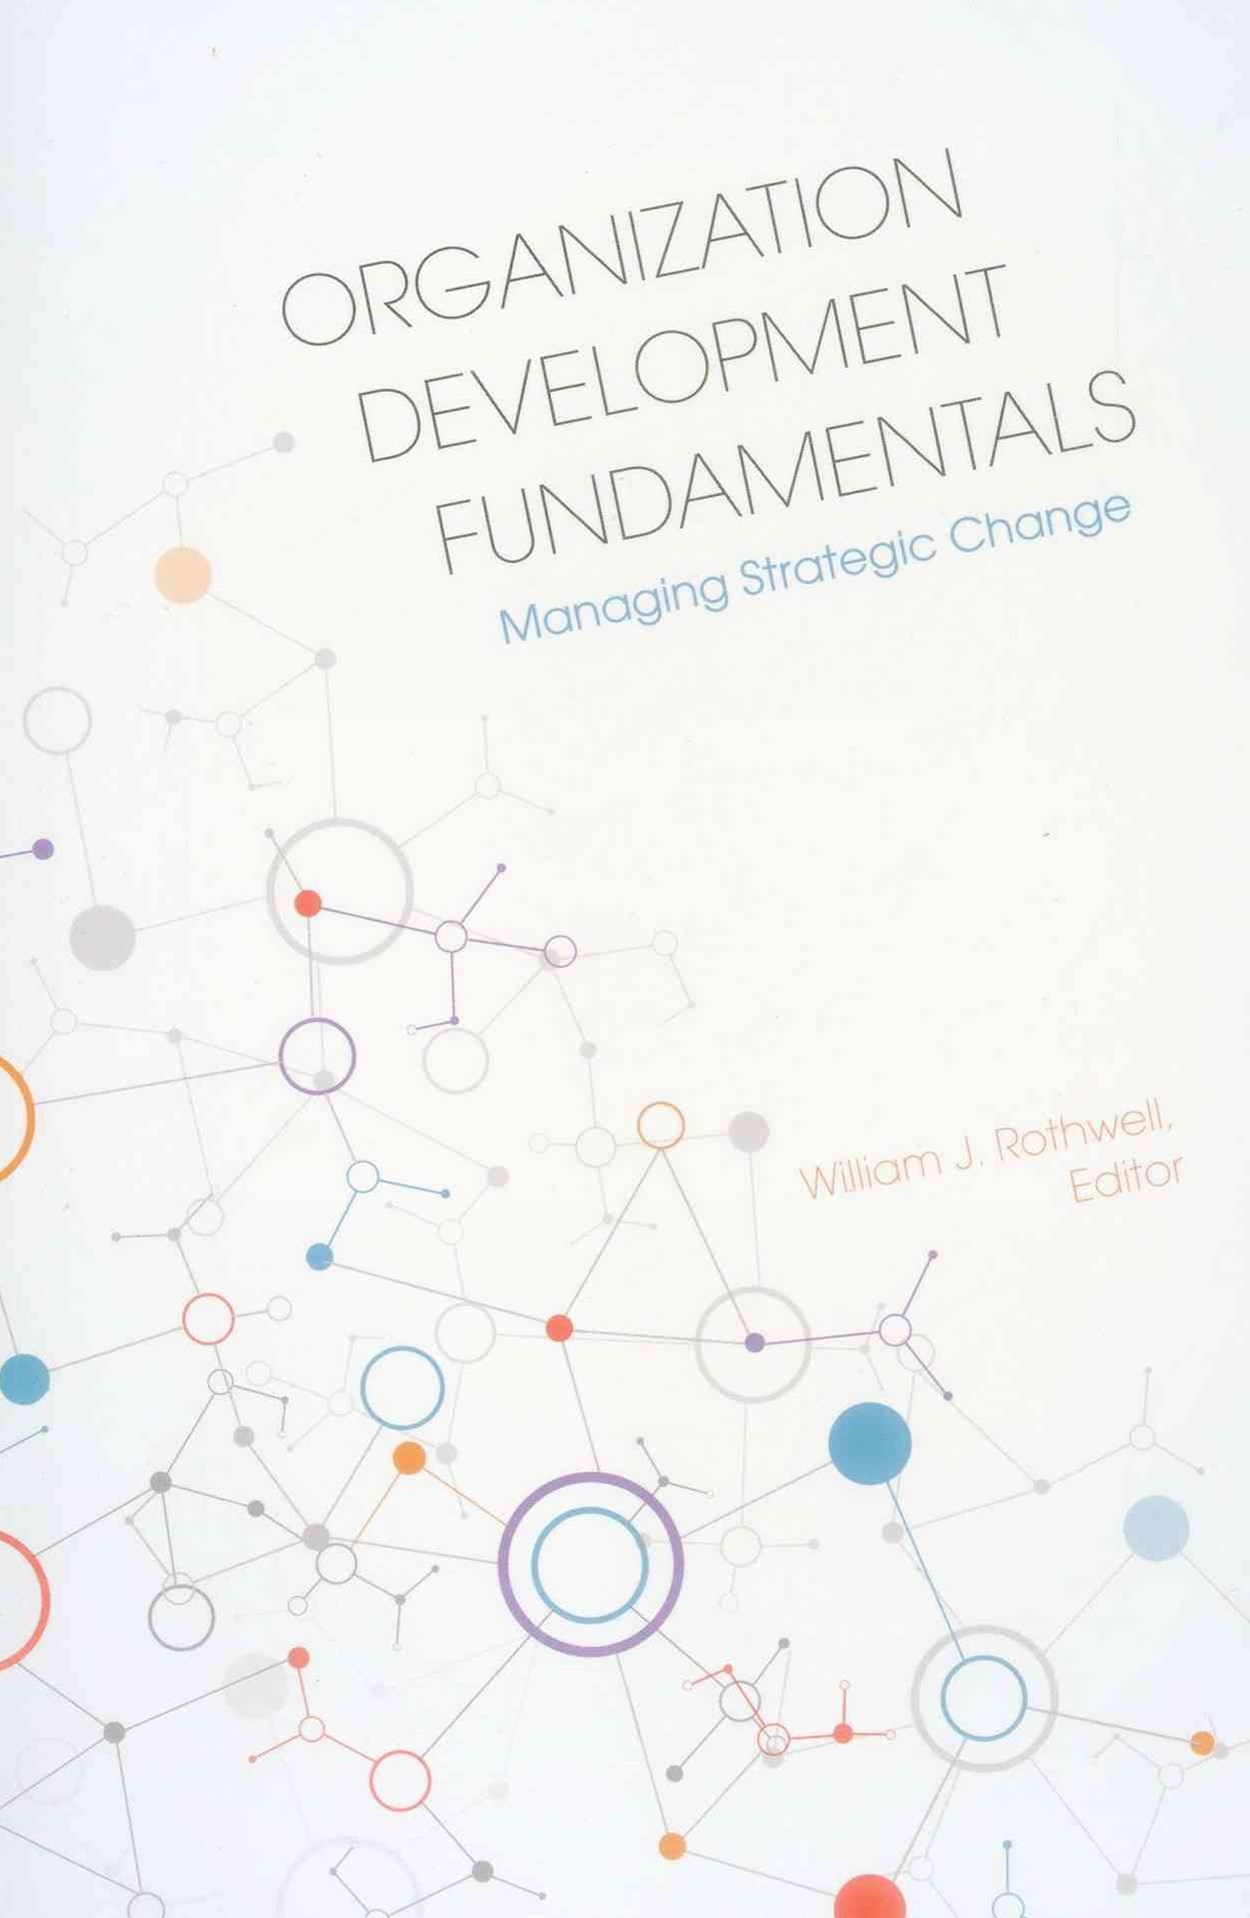 Organization Development Fundamentals